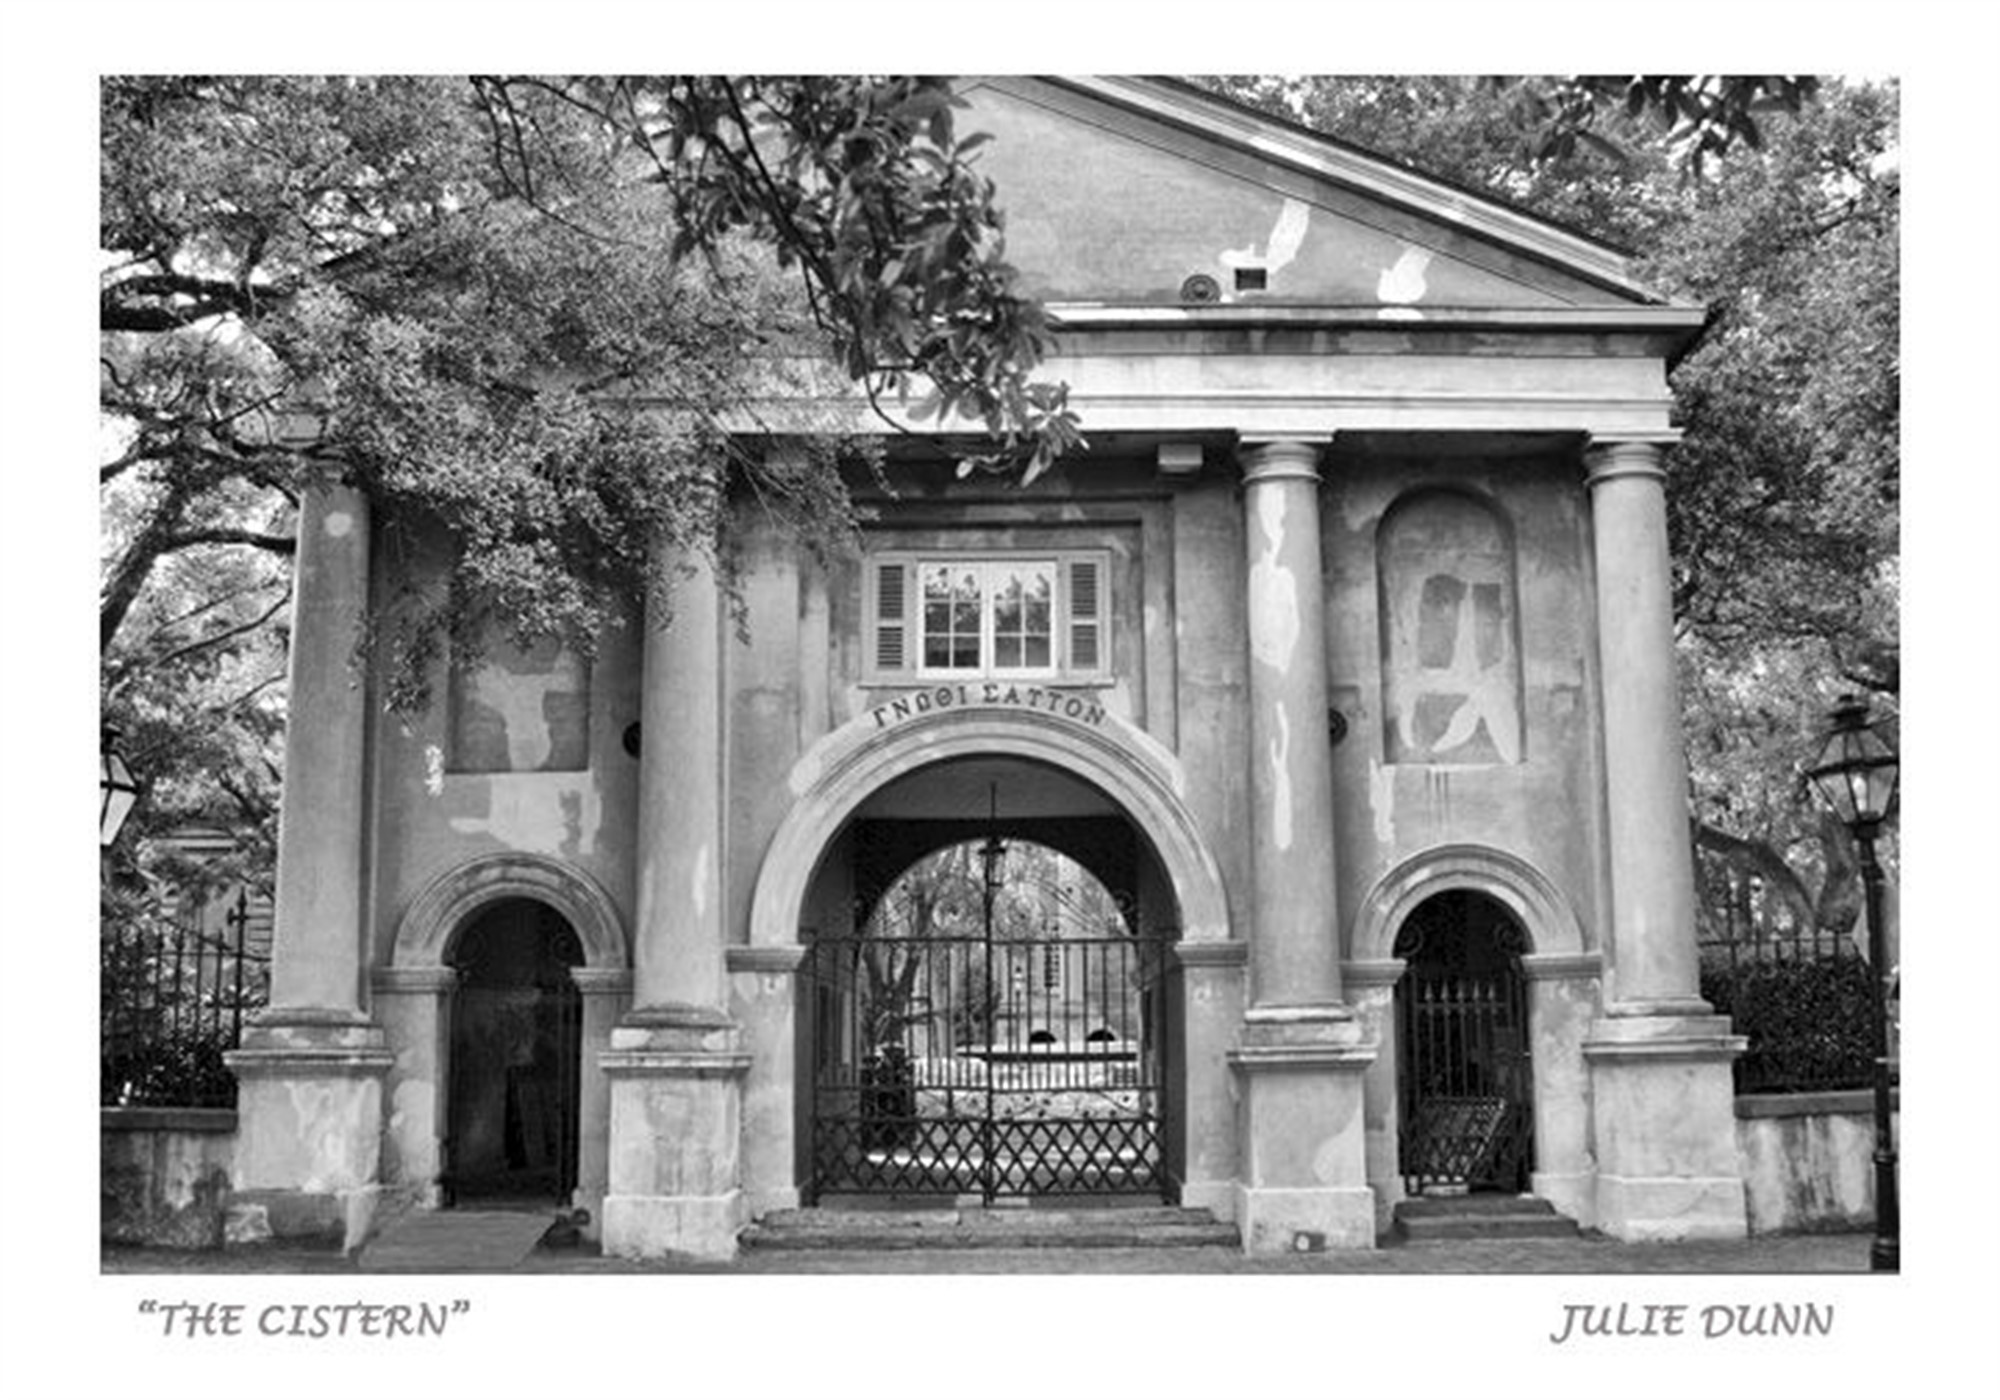 The Cistern by Julie Dunn